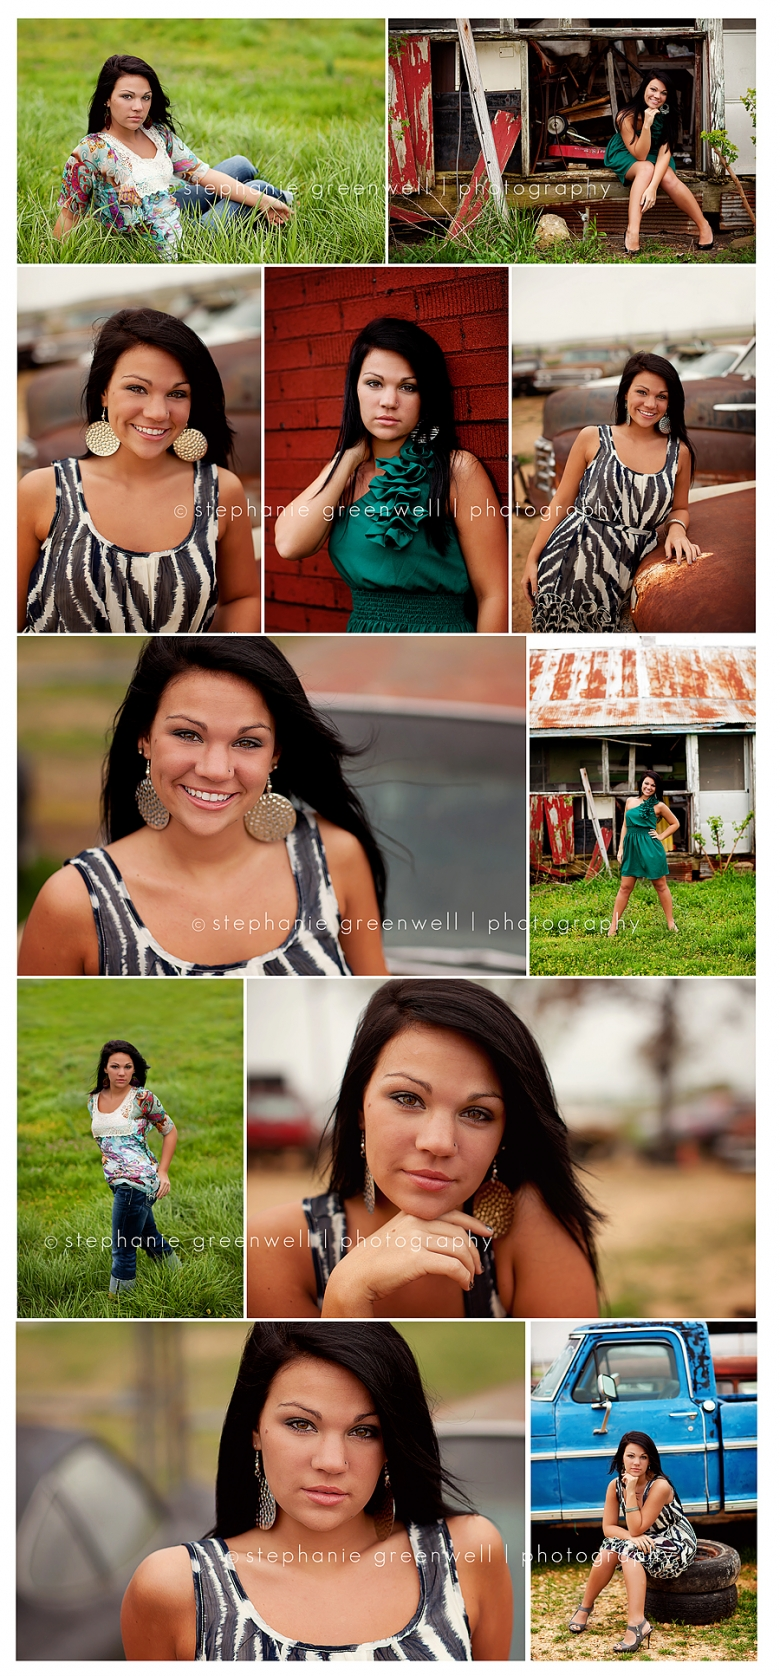 Senior Pictures Photography Dyersburg Tennessee Stephanie Greenwell